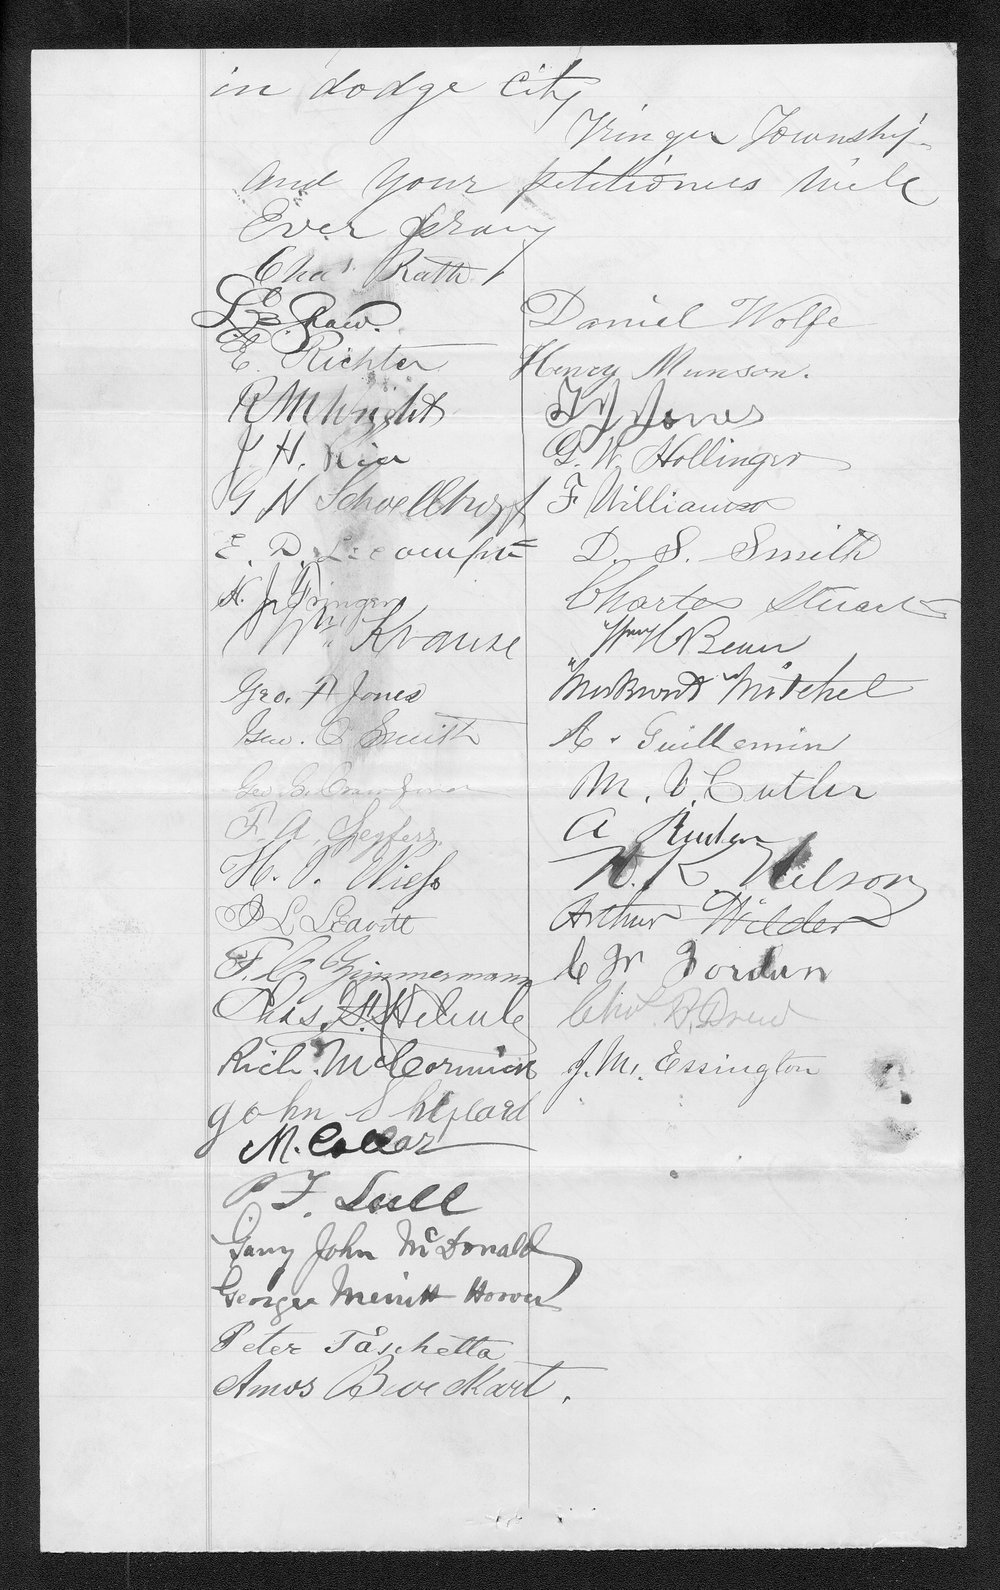 Ford County organization records - 3